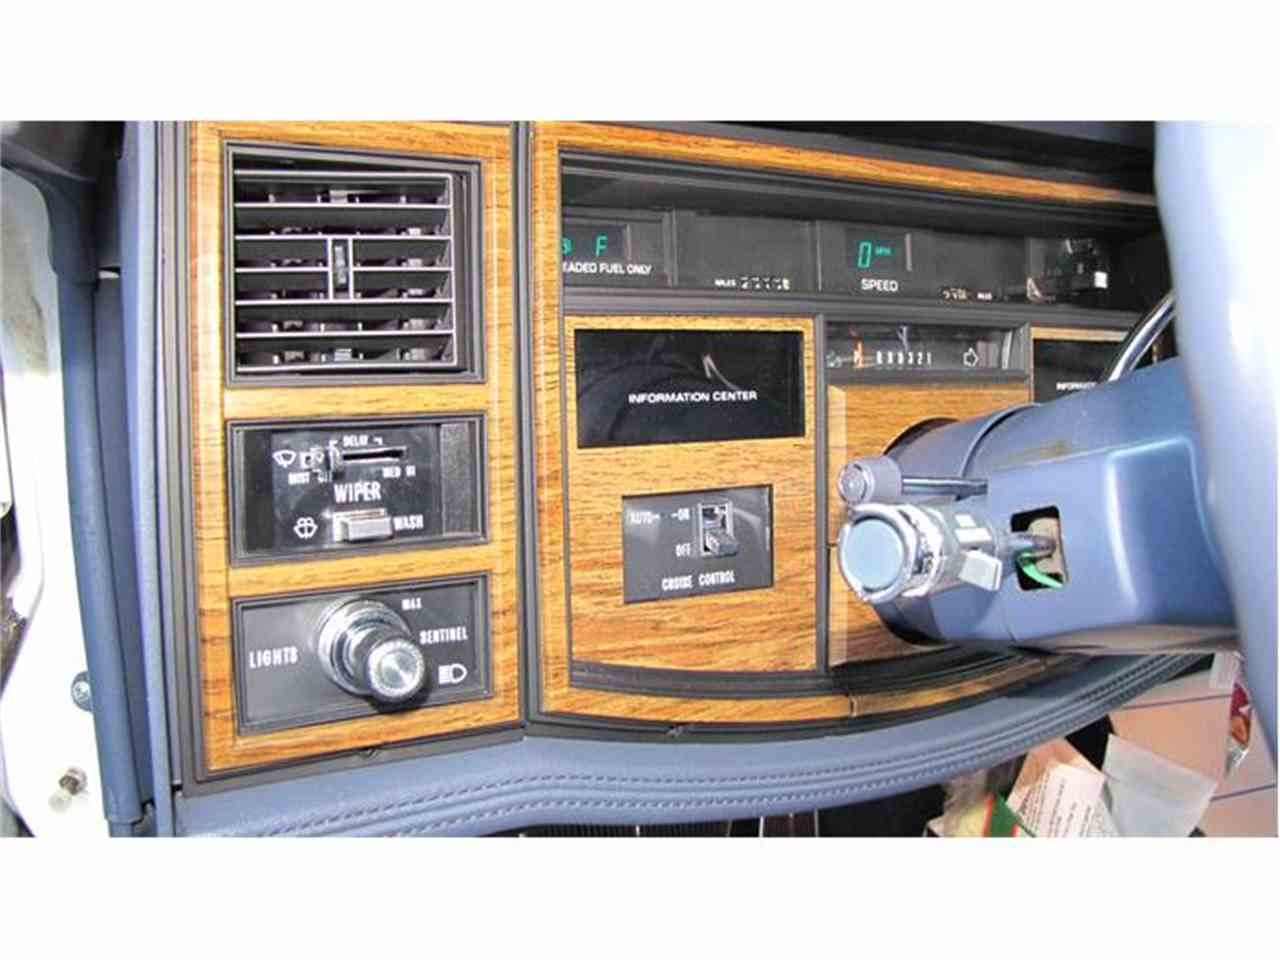 Large Picture of 1984 Cadillac Eldorado Biarritz located in Ohio - $15,000.00 Offered by a Private Seller - 7FZZ